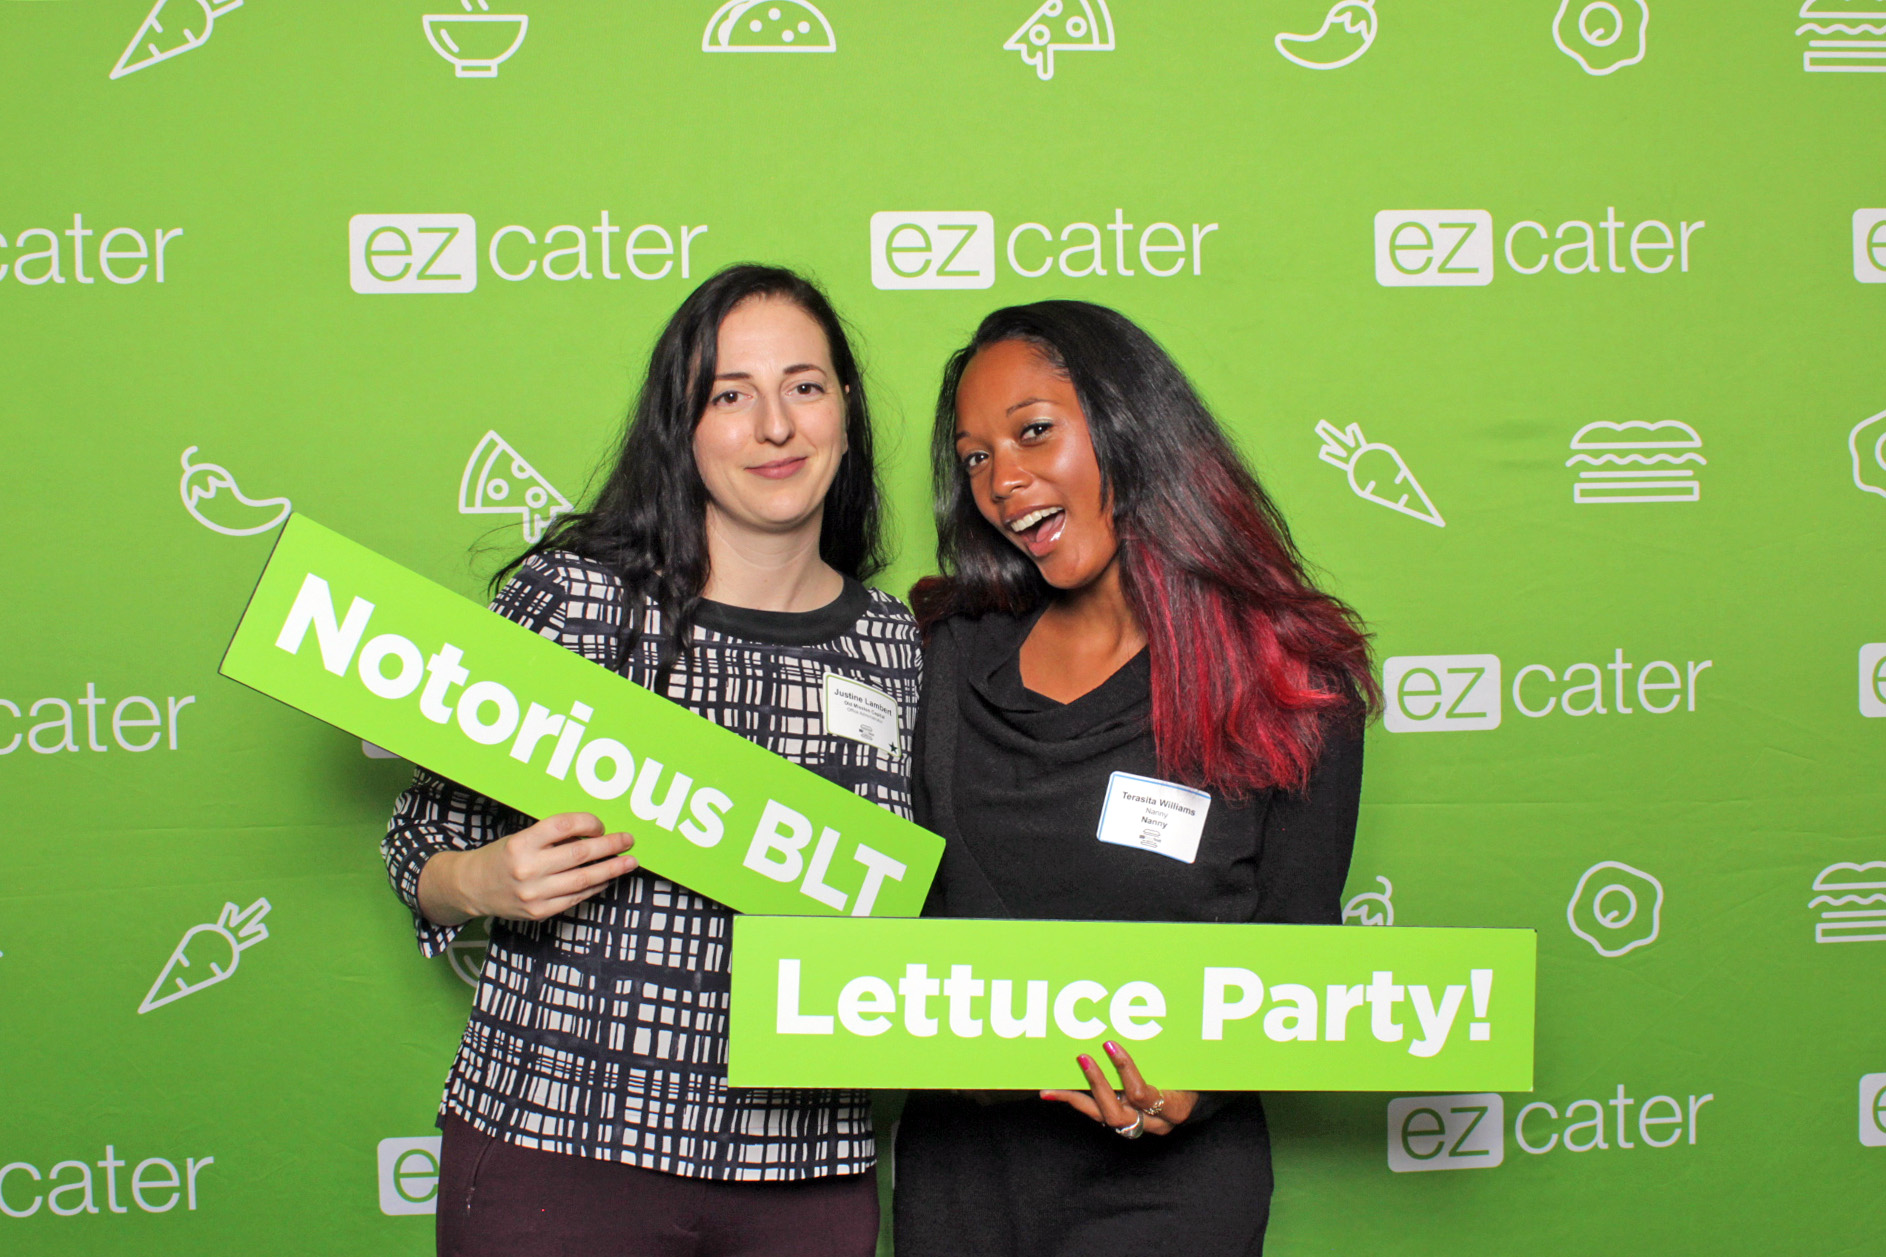 Naperville EZCater Lettuce Party